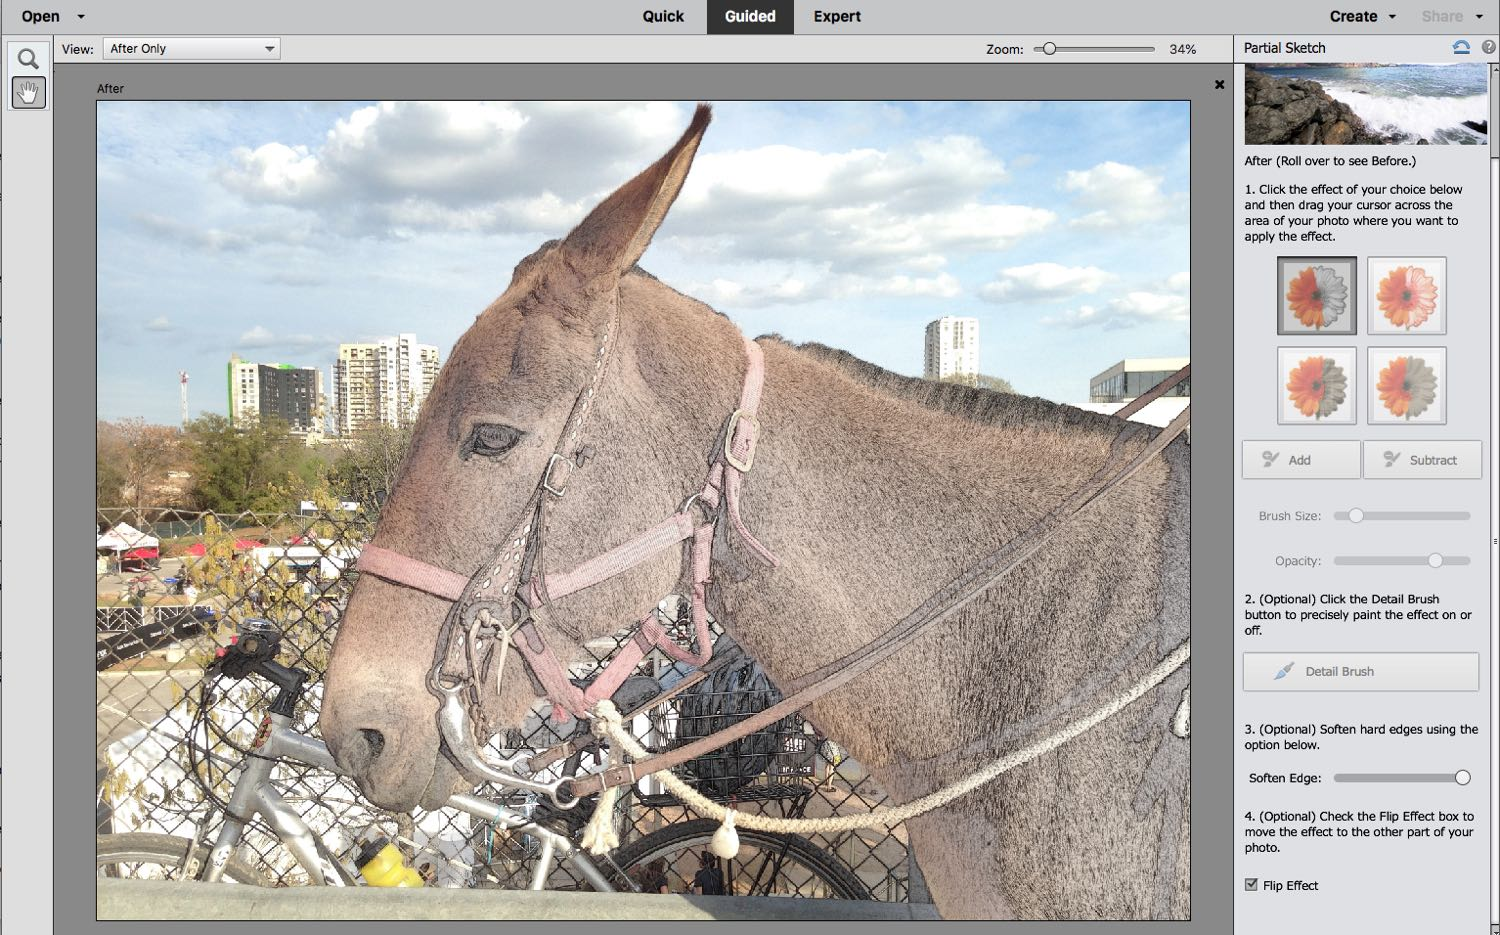 A donkey on the screen & a filter is used to show the effect